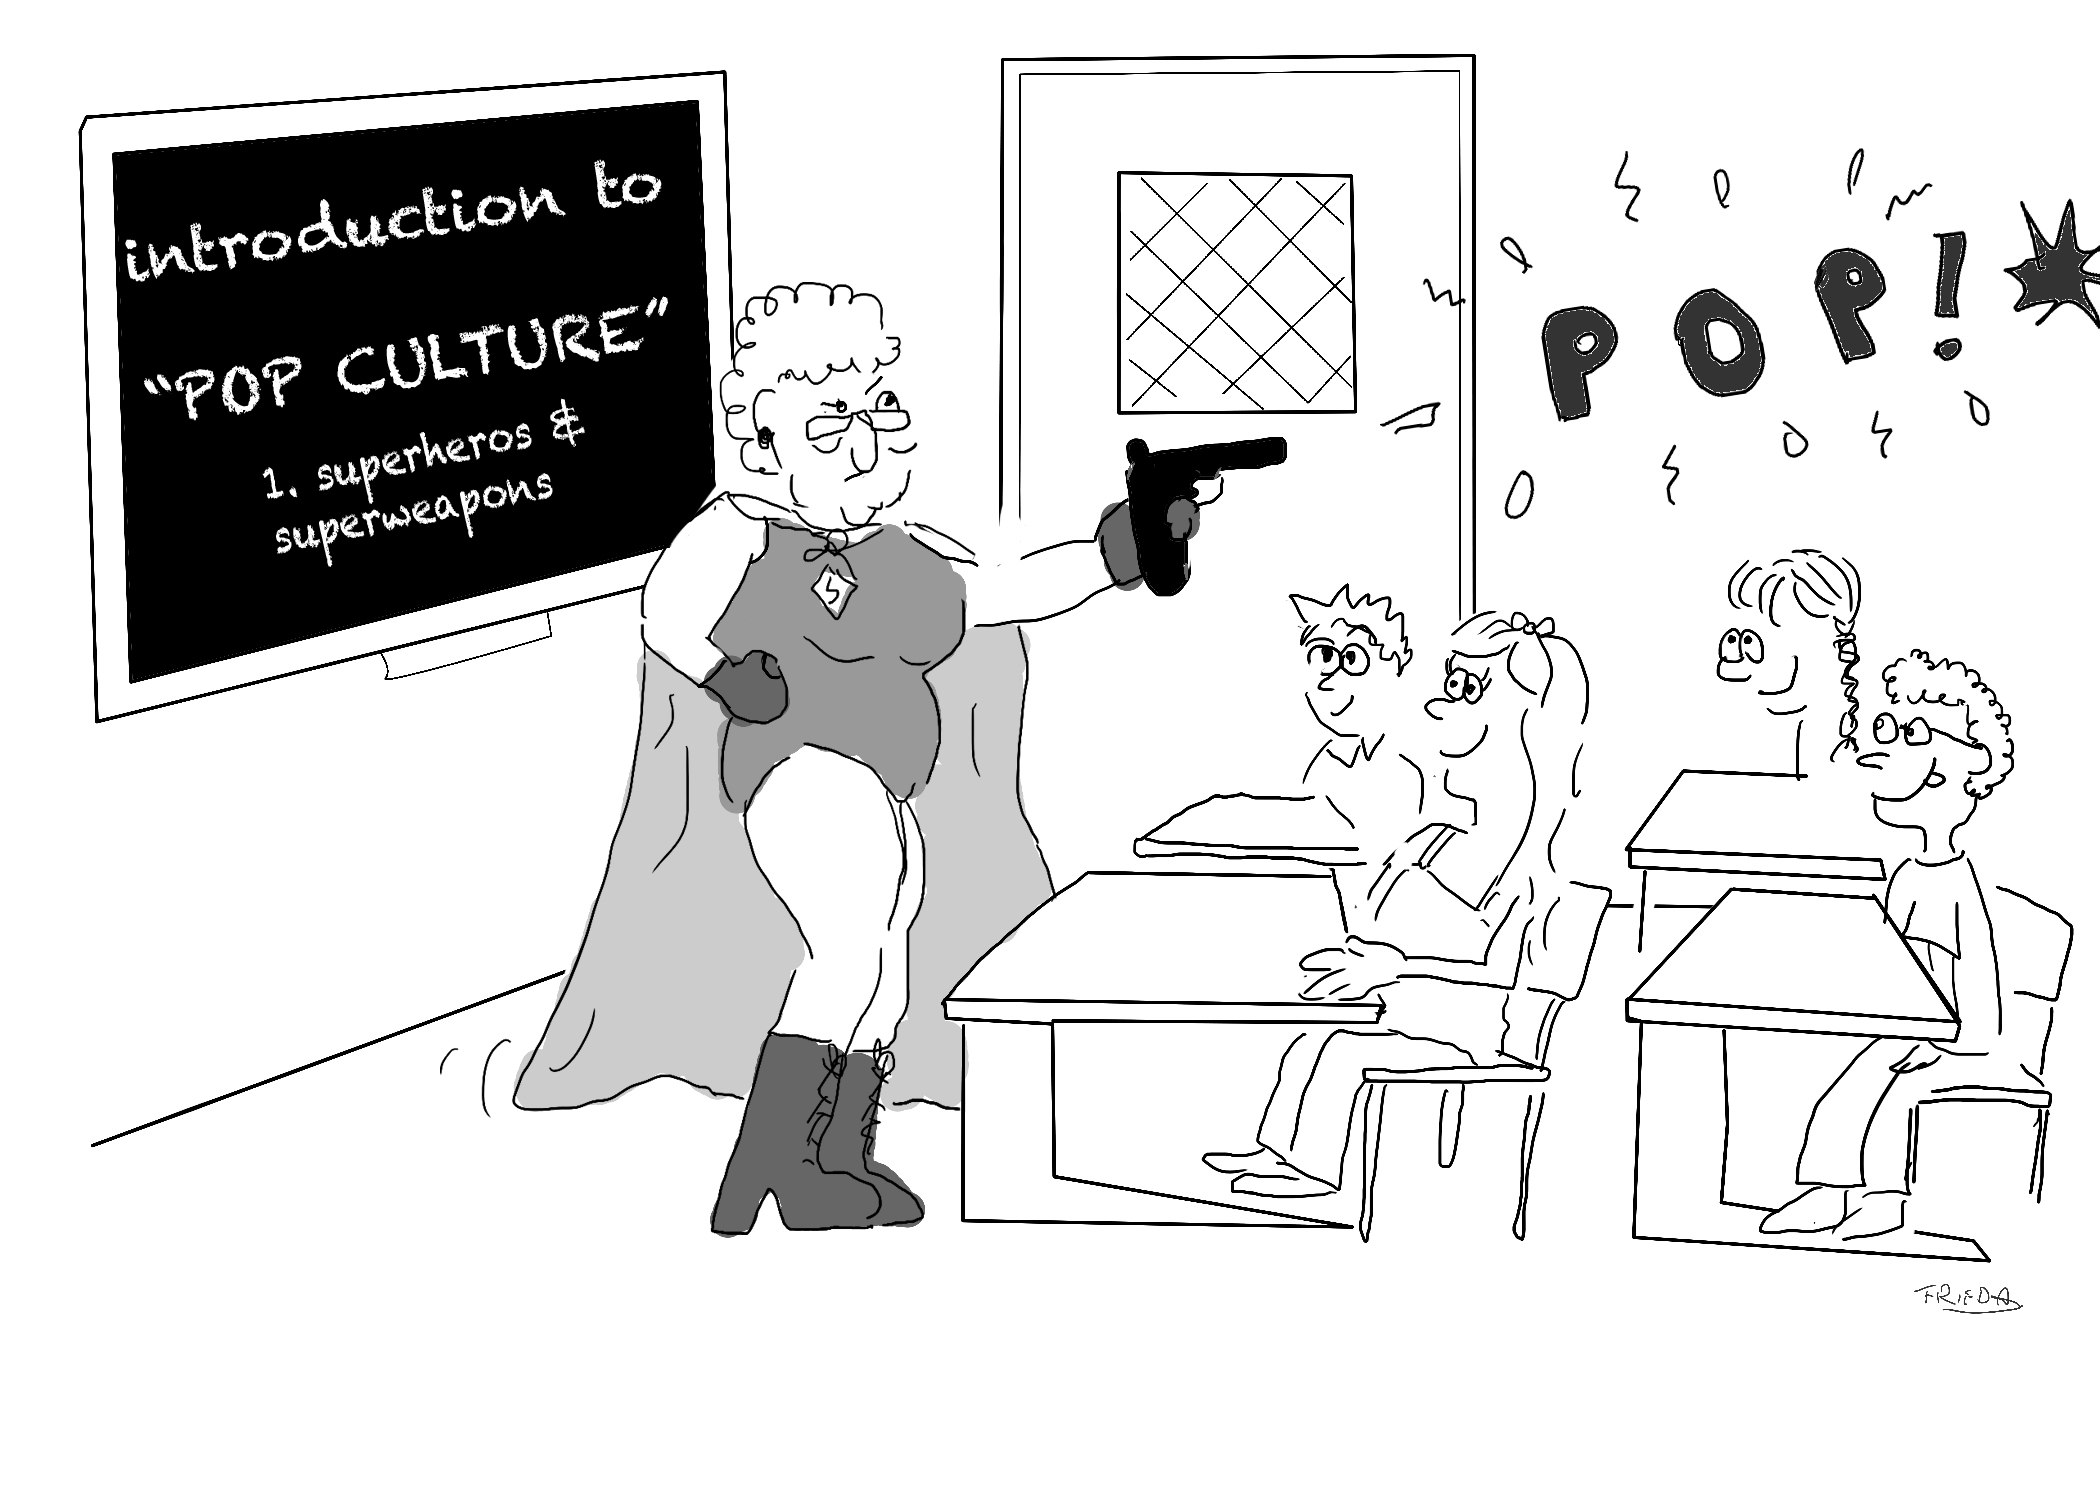 A superhero teaching pop culture by explaining how to pop someone with a gun